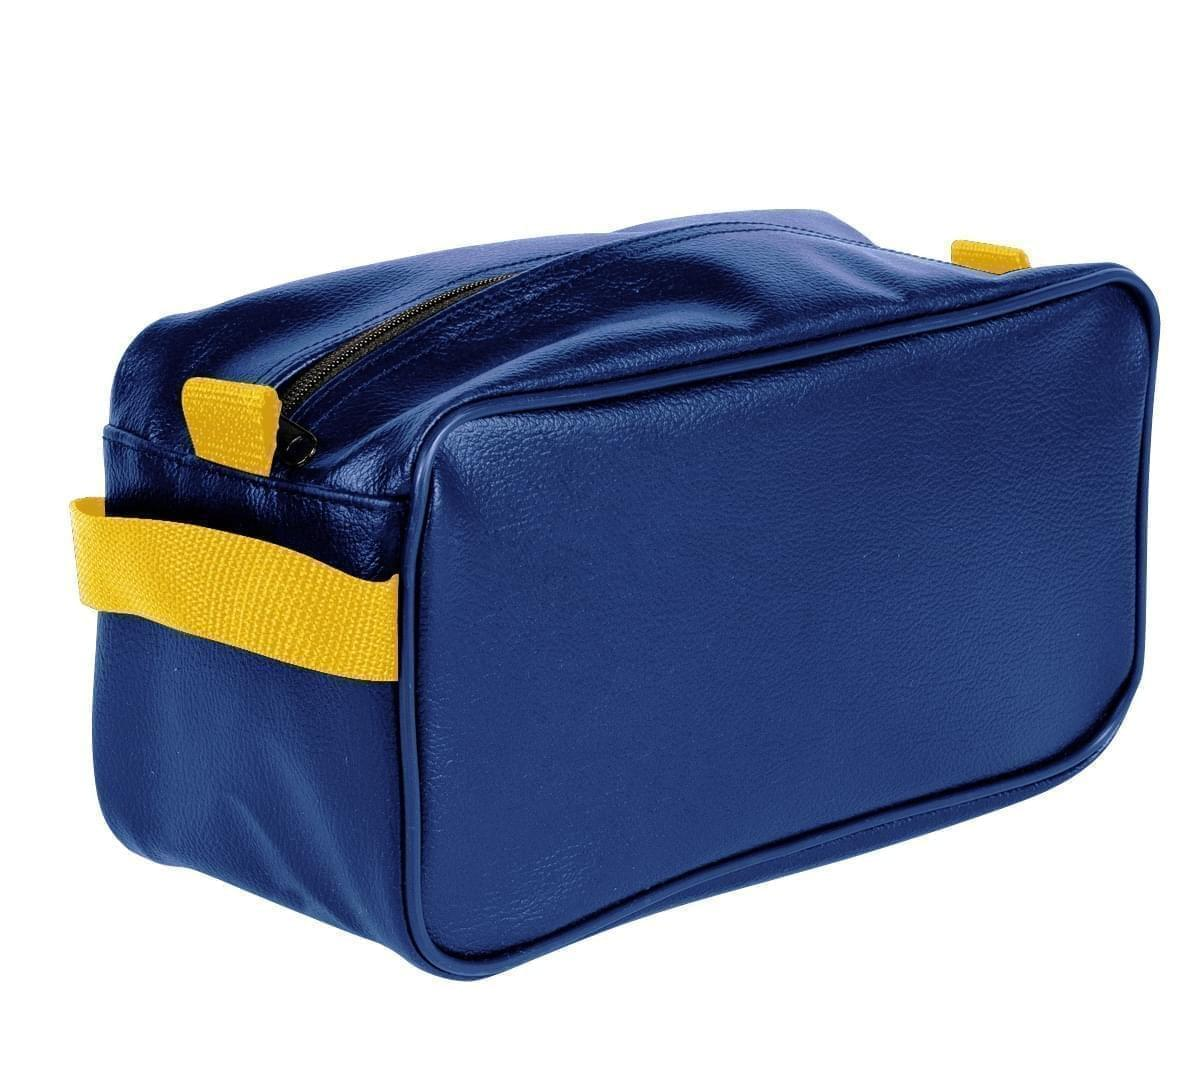 USA Made Cosmetic & Toiletry Cases, Royal Blue-Gold, 3000996-A05